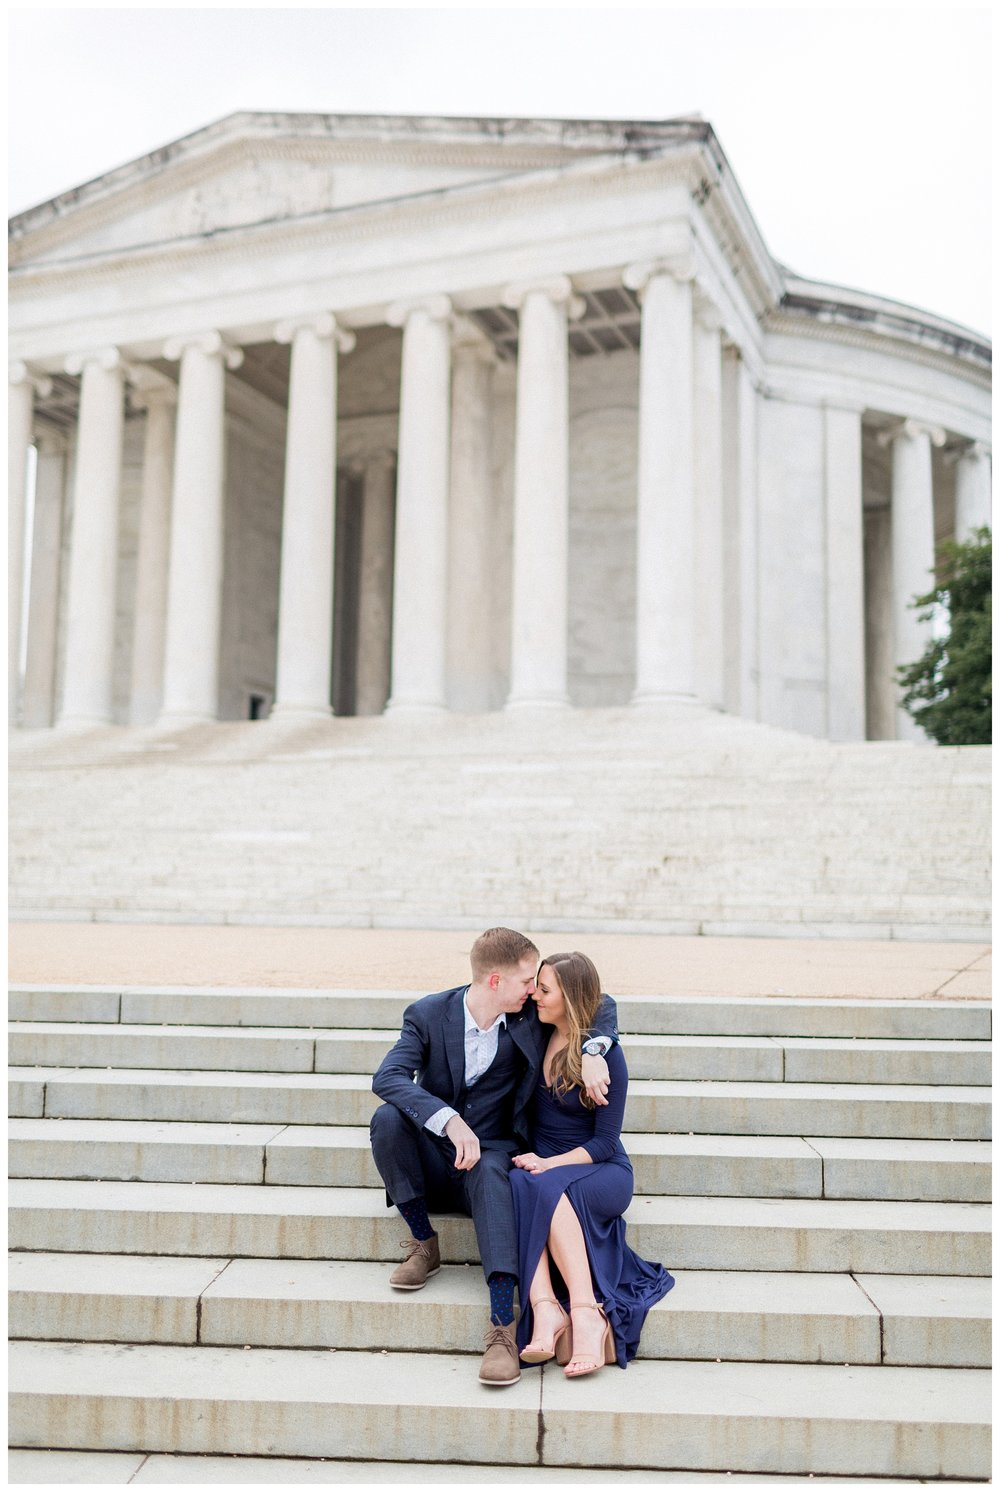 Washingon DC Engagement Photos | Jefferson Memorial Engagement | Kir Tuben_0019.jpg